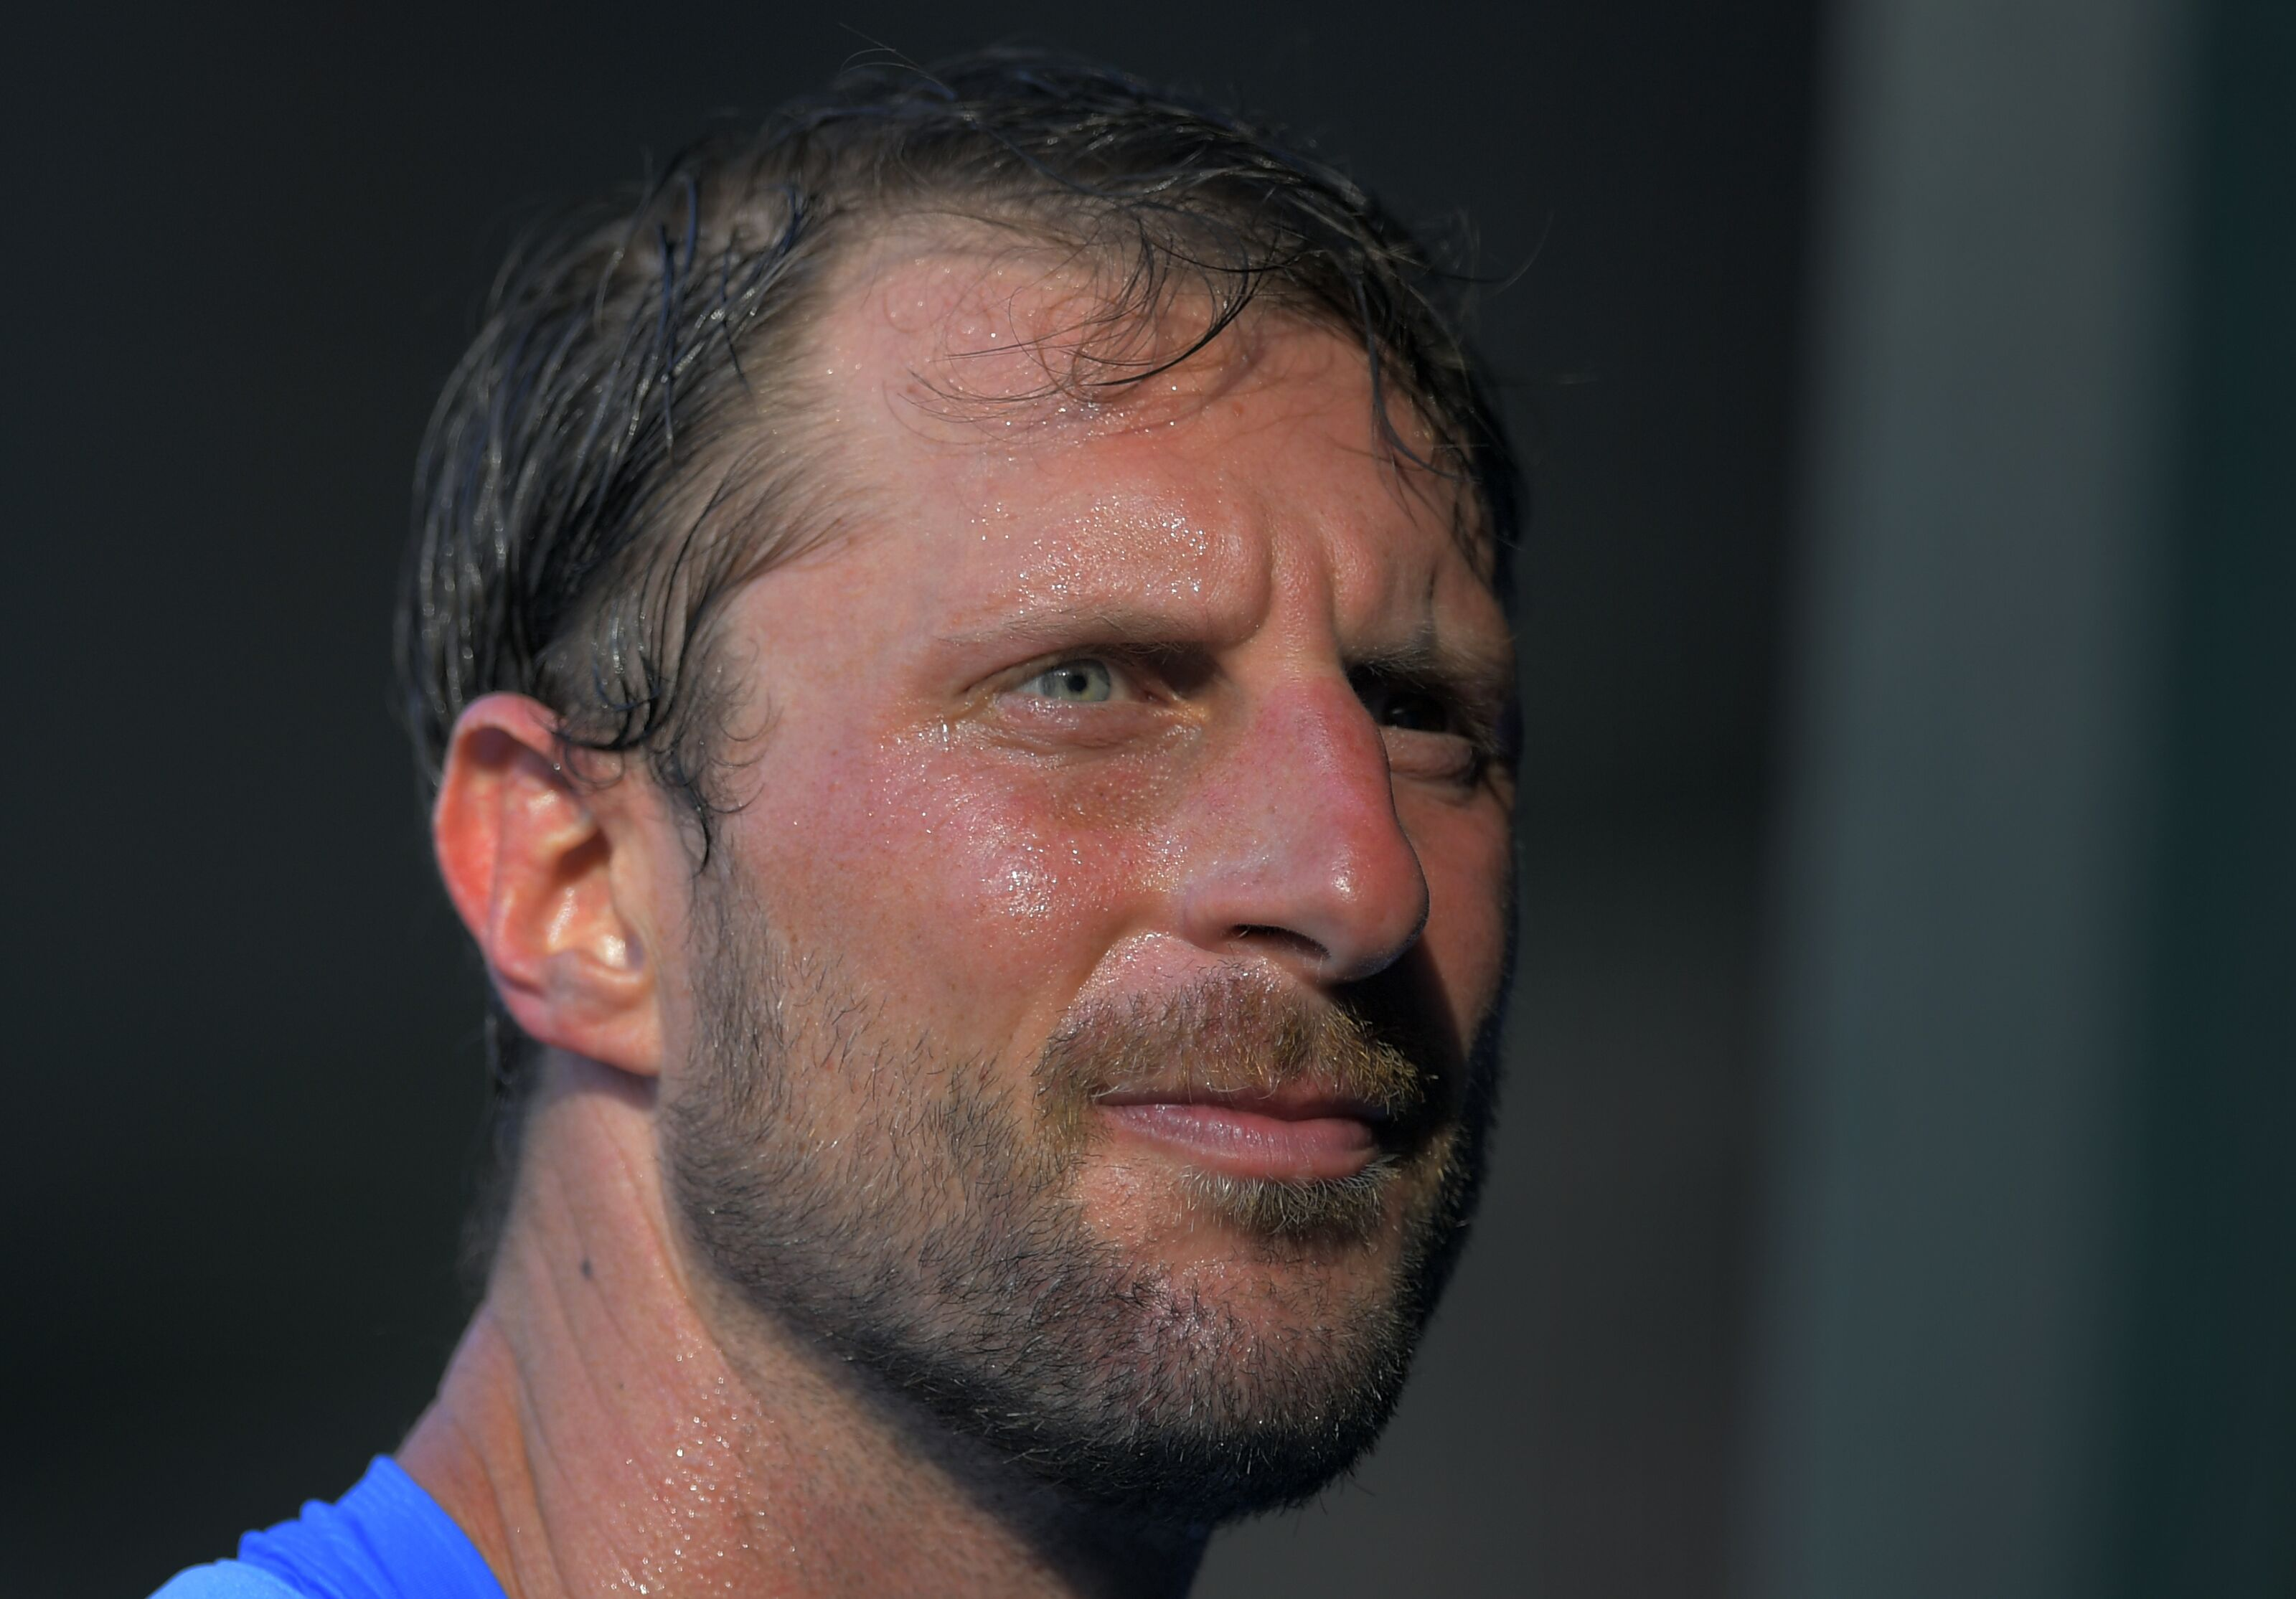 Washington Nationals: Max Scherzer has Landed on IL with Back Strain